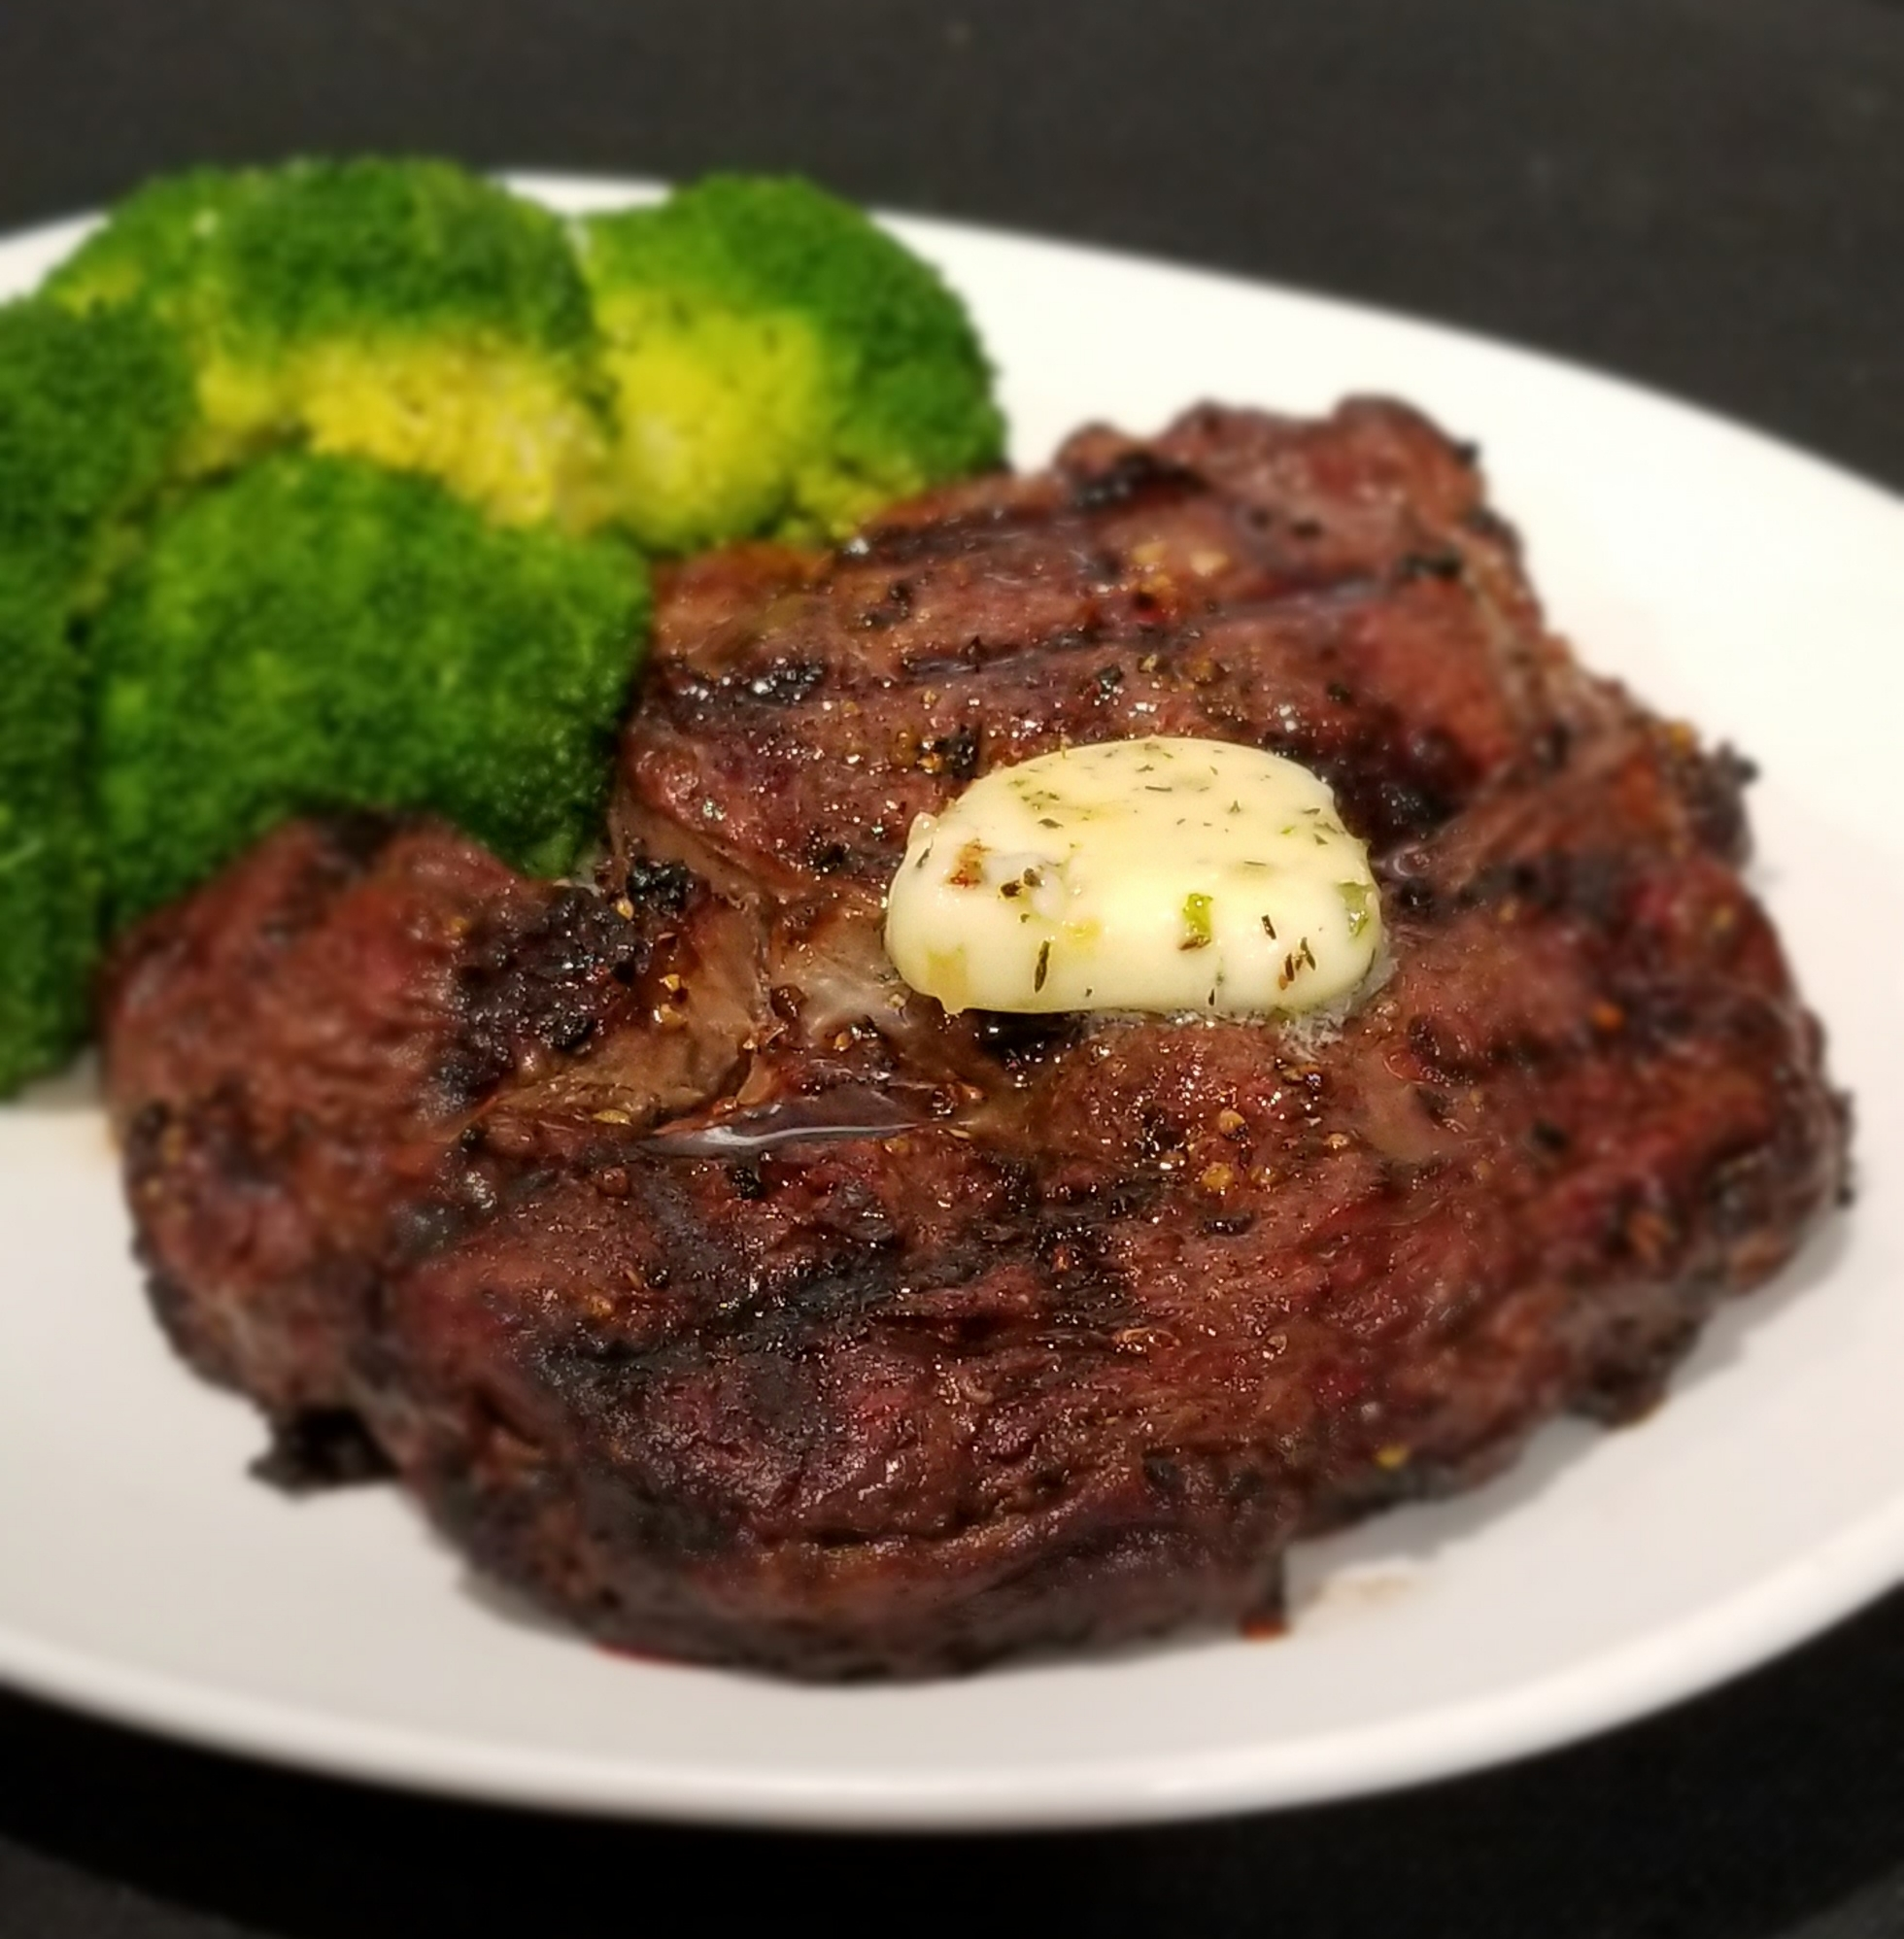 Ribeye with broccoli